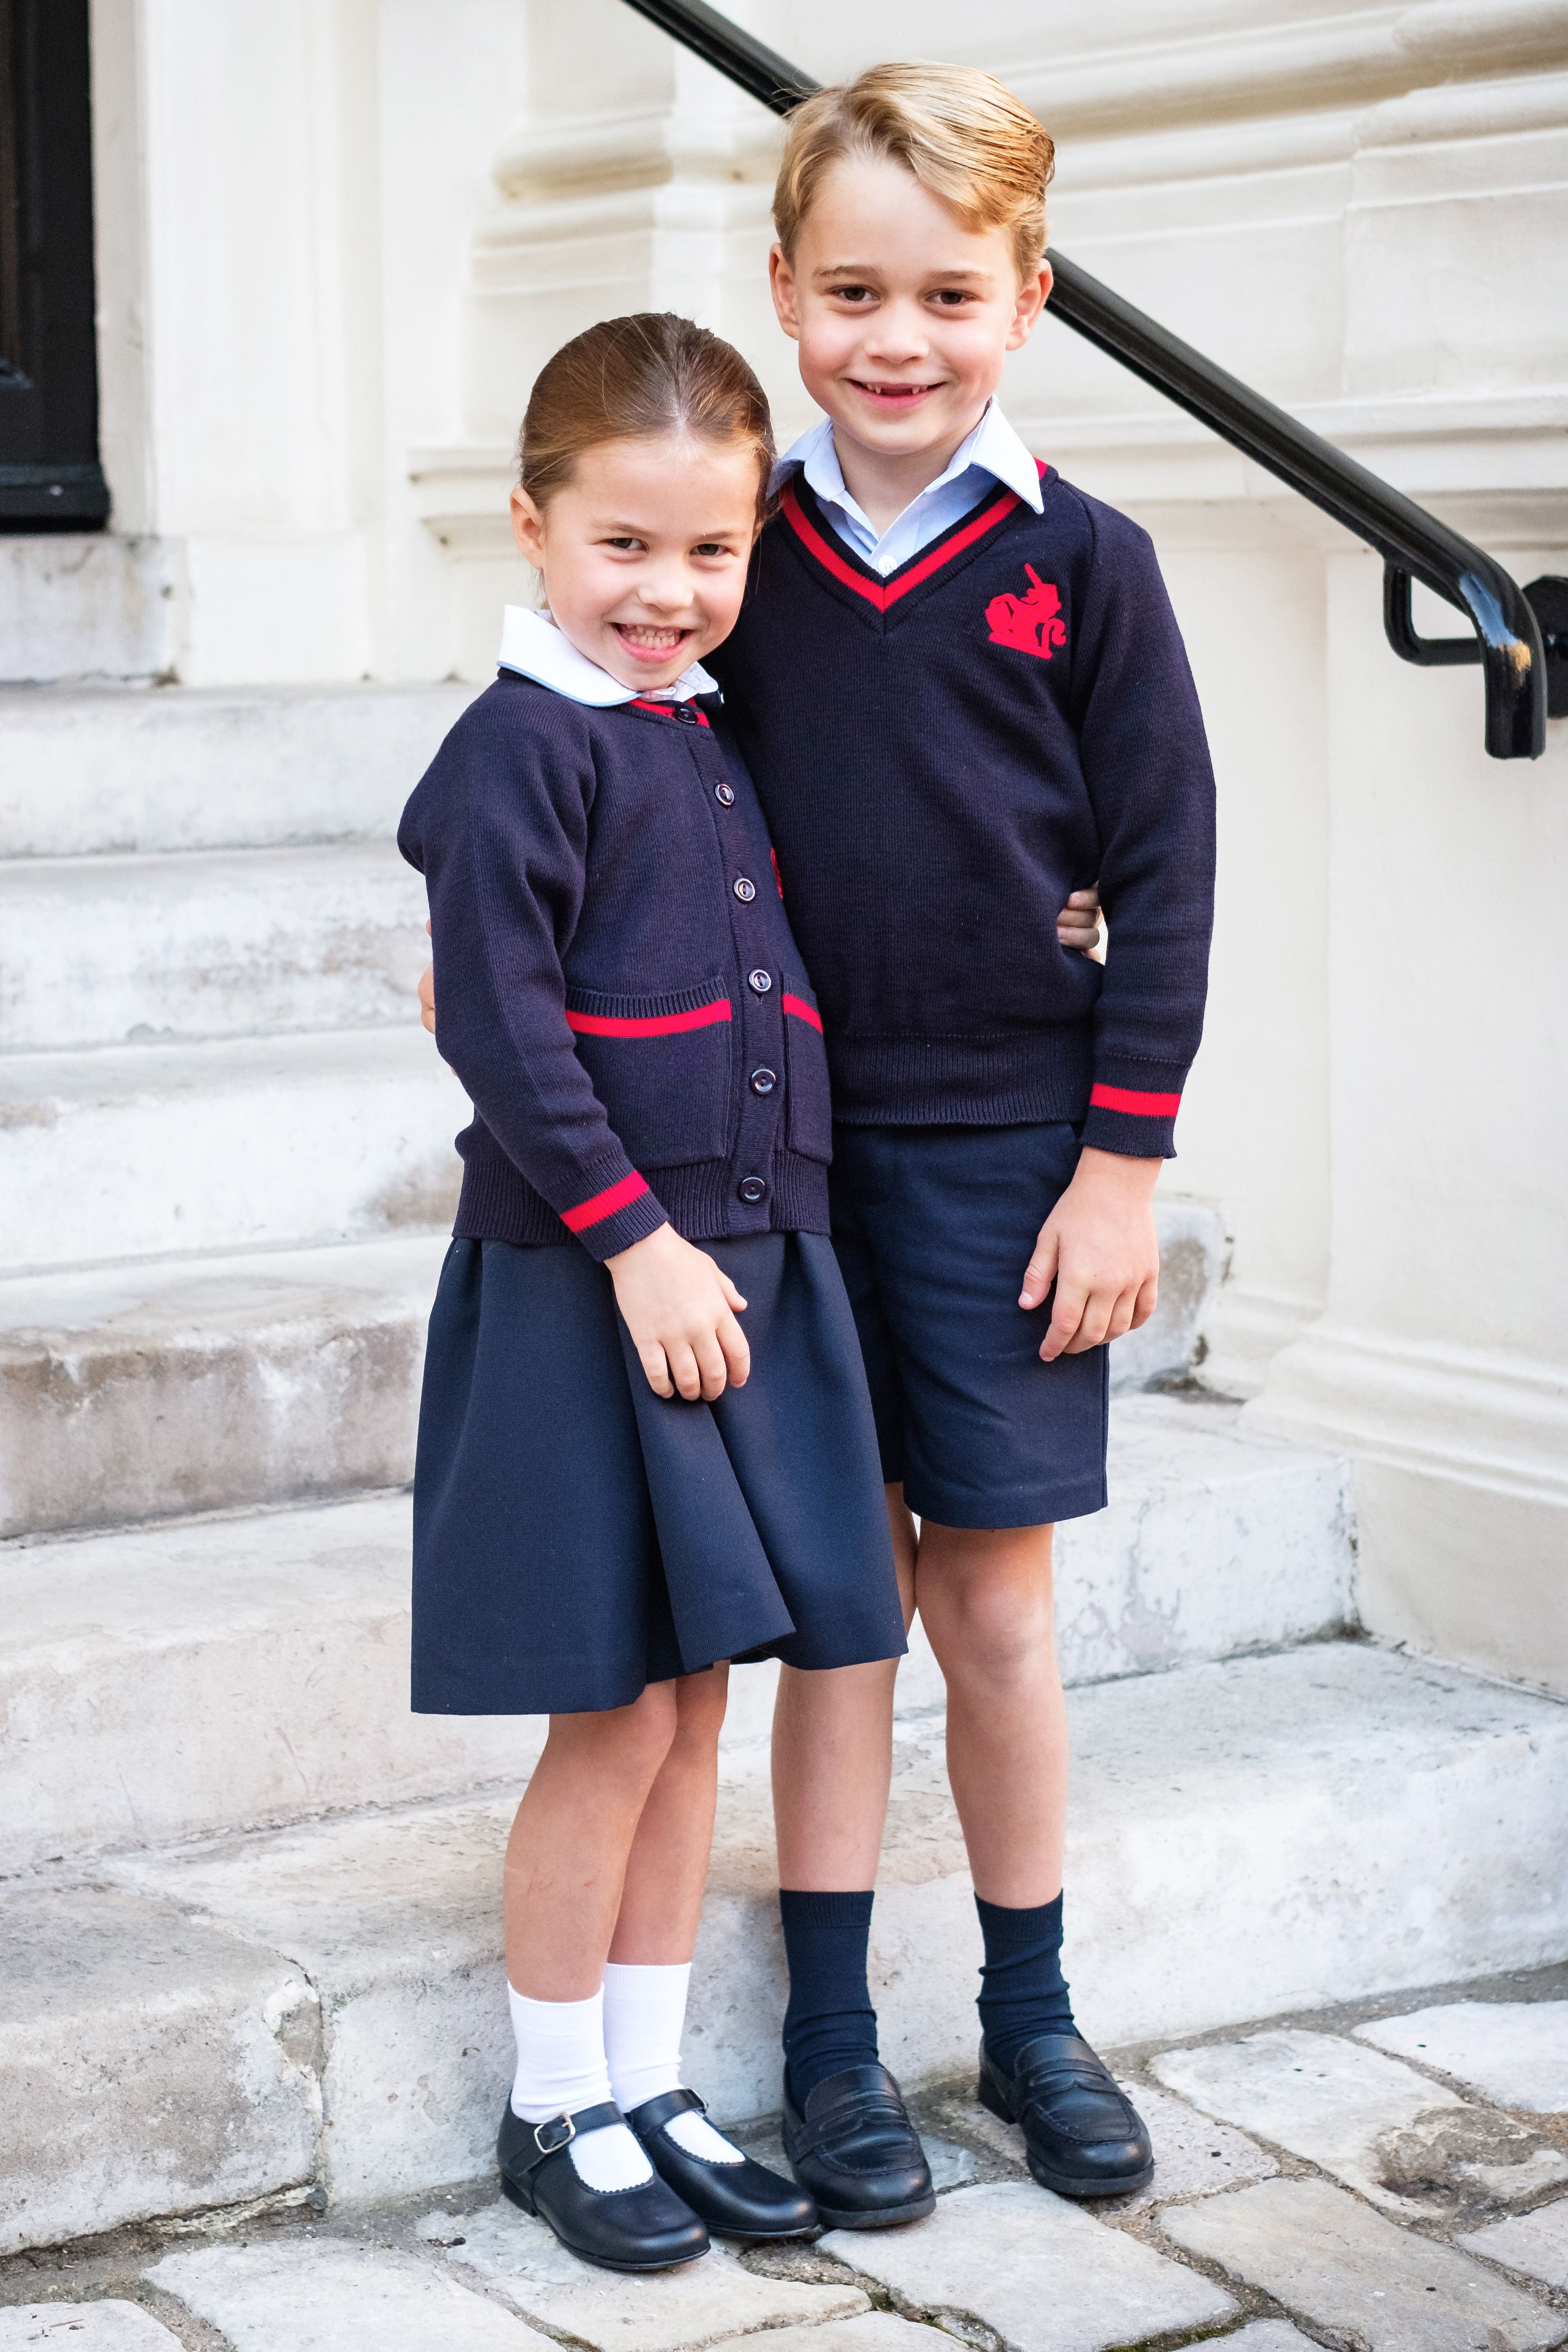 Kate and William Shared the Cutest Photo of Prince George and Princess Charlotte on Their First Day of School